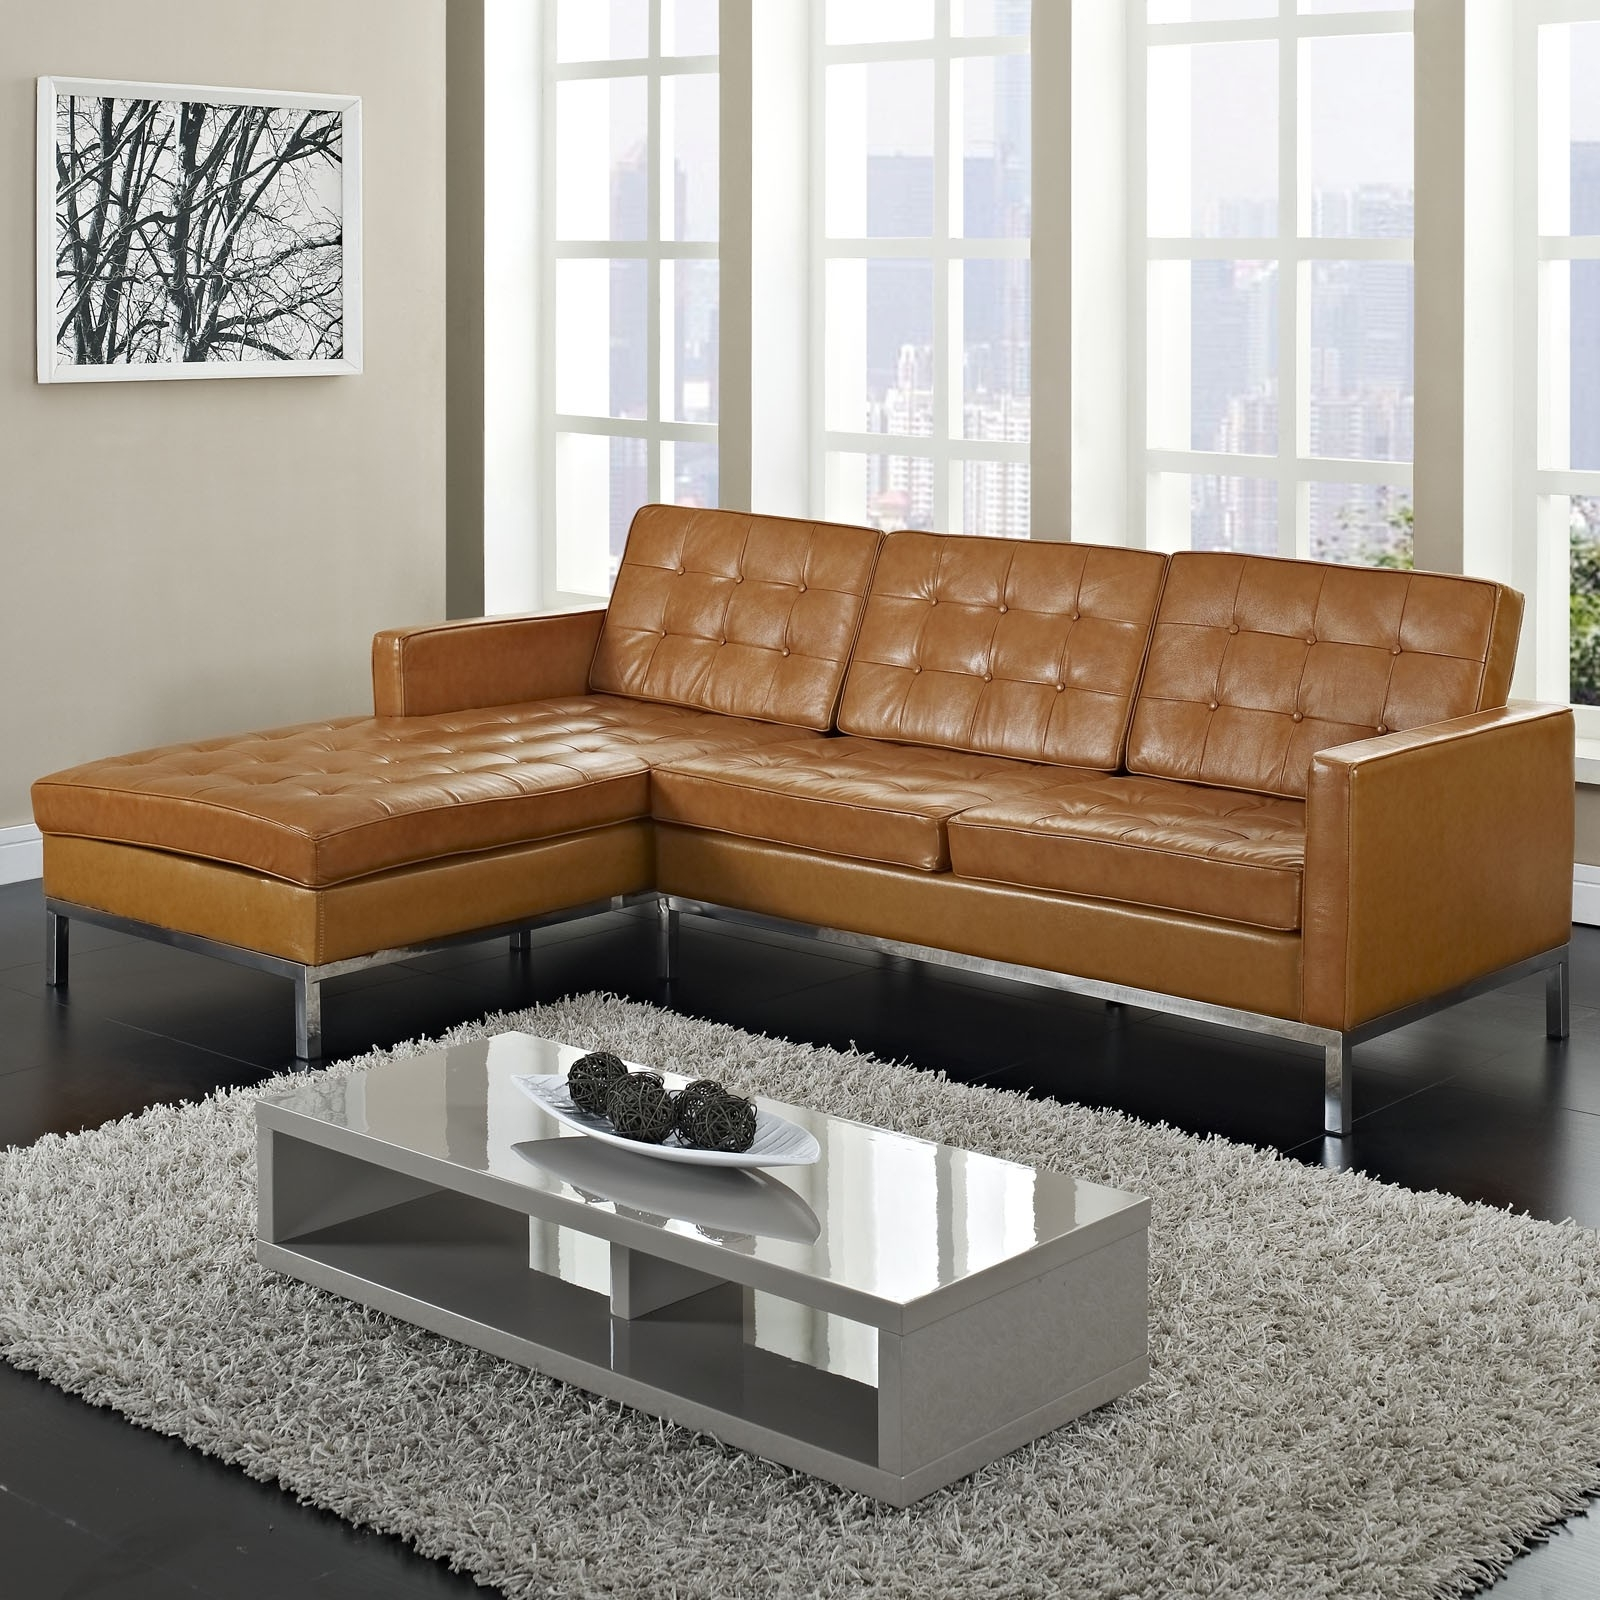 2018 Furniture, Maximizing Small Living Room Spaces With 3 Piece Brown Regarding Sectional Sofas For Small Places (View 10 of 20)